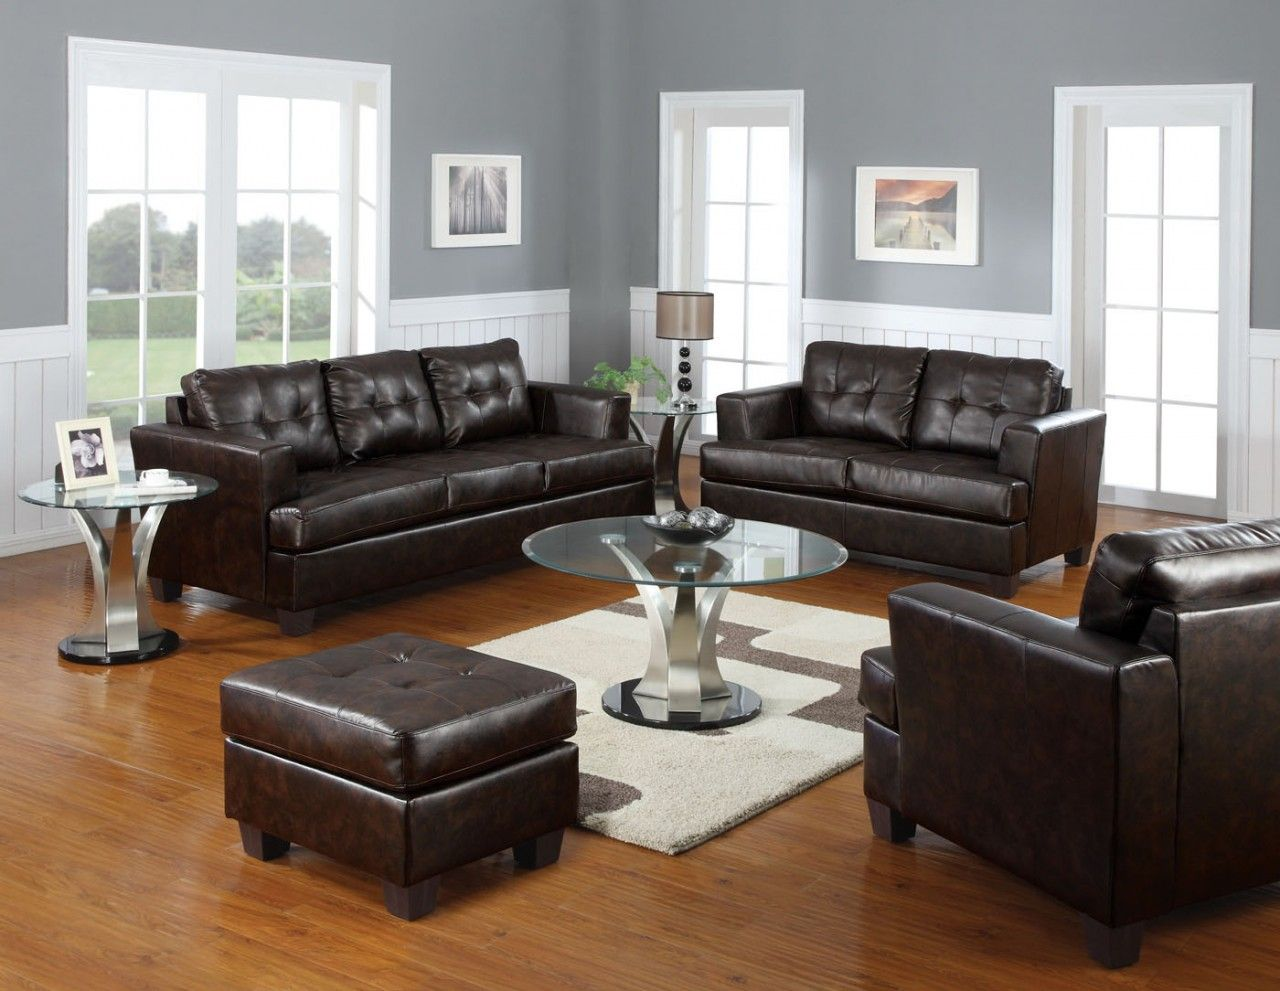 Astounding Acme Diamond Bonded Leather Living Room Set In Brown Spiritservingveterans Wood Chair Design Ideas Spiritservingveteransorg